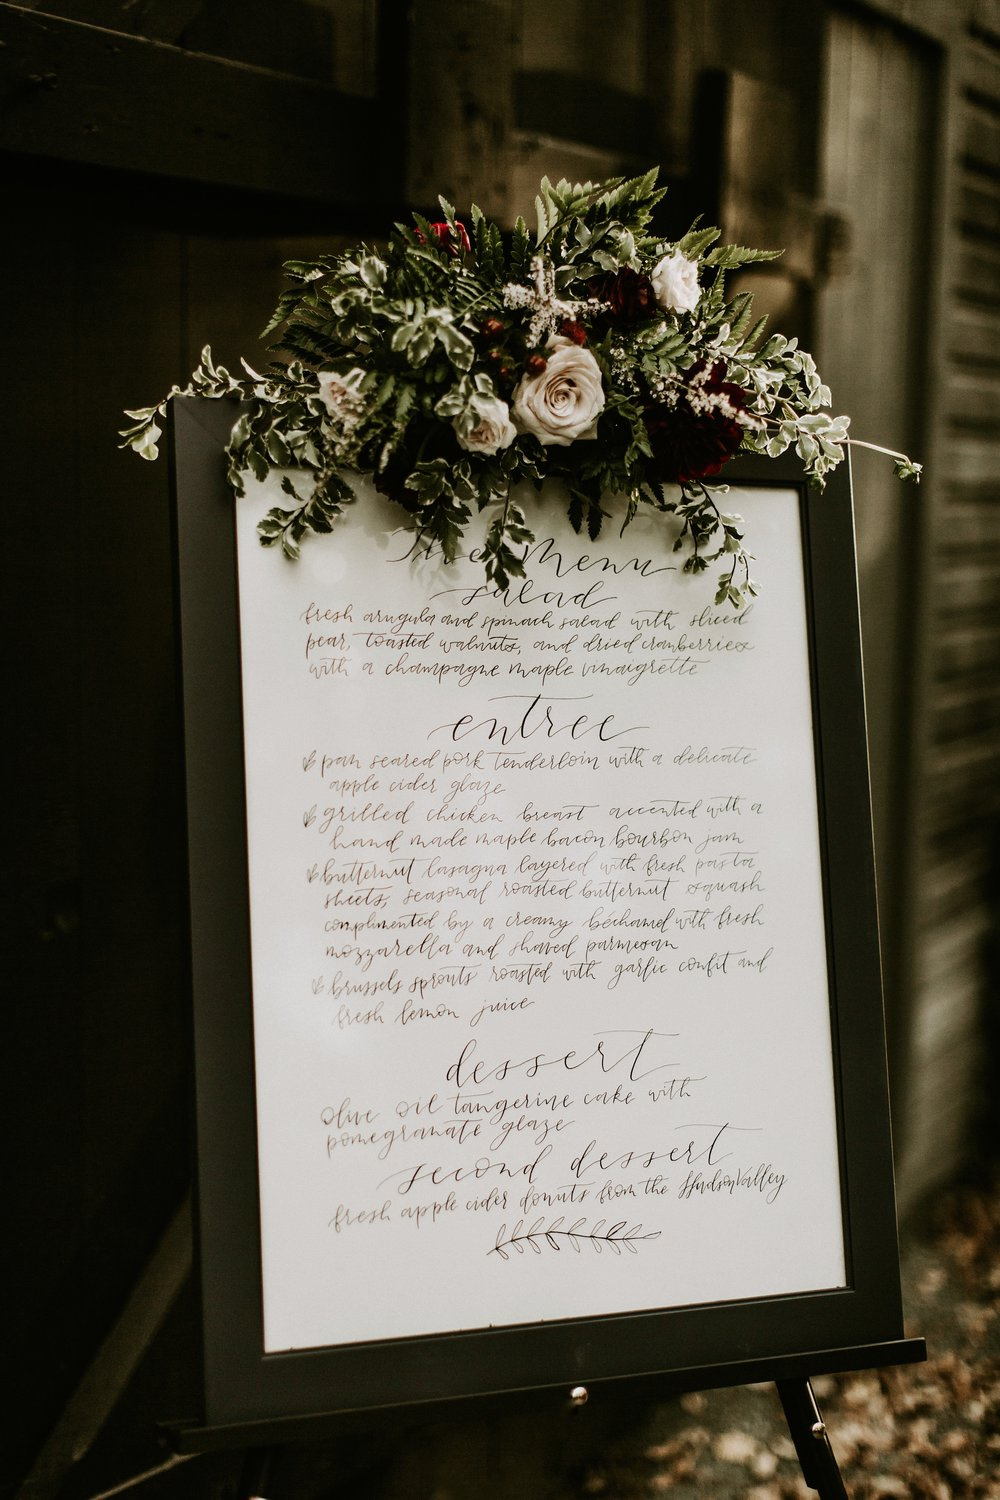 Rustic wedding details and wedding planning tips from #thehandlettershop